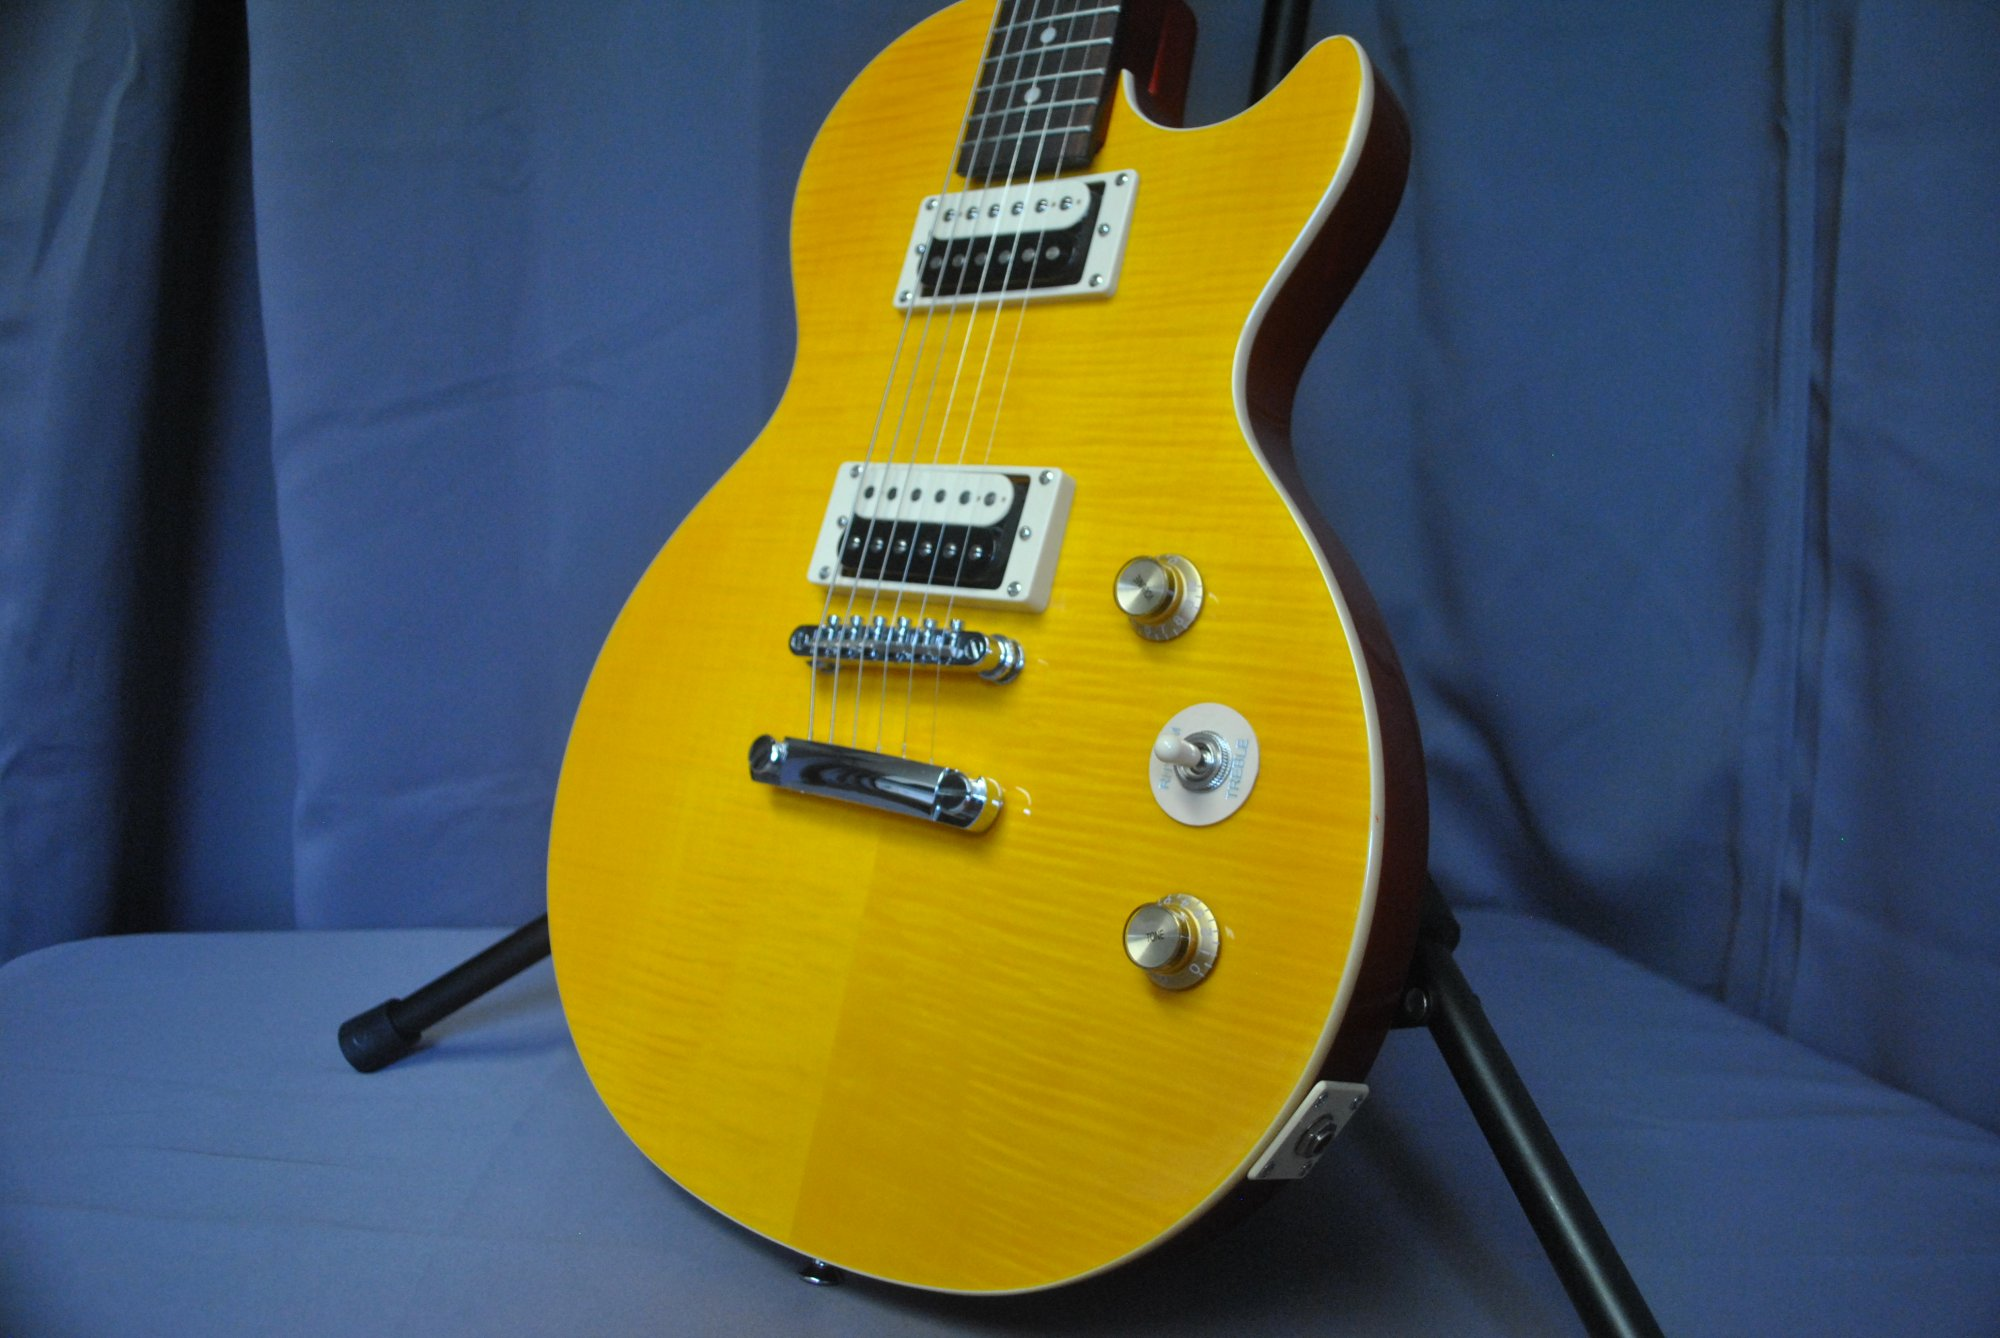 Epiphone Electric Guitar w/ Case